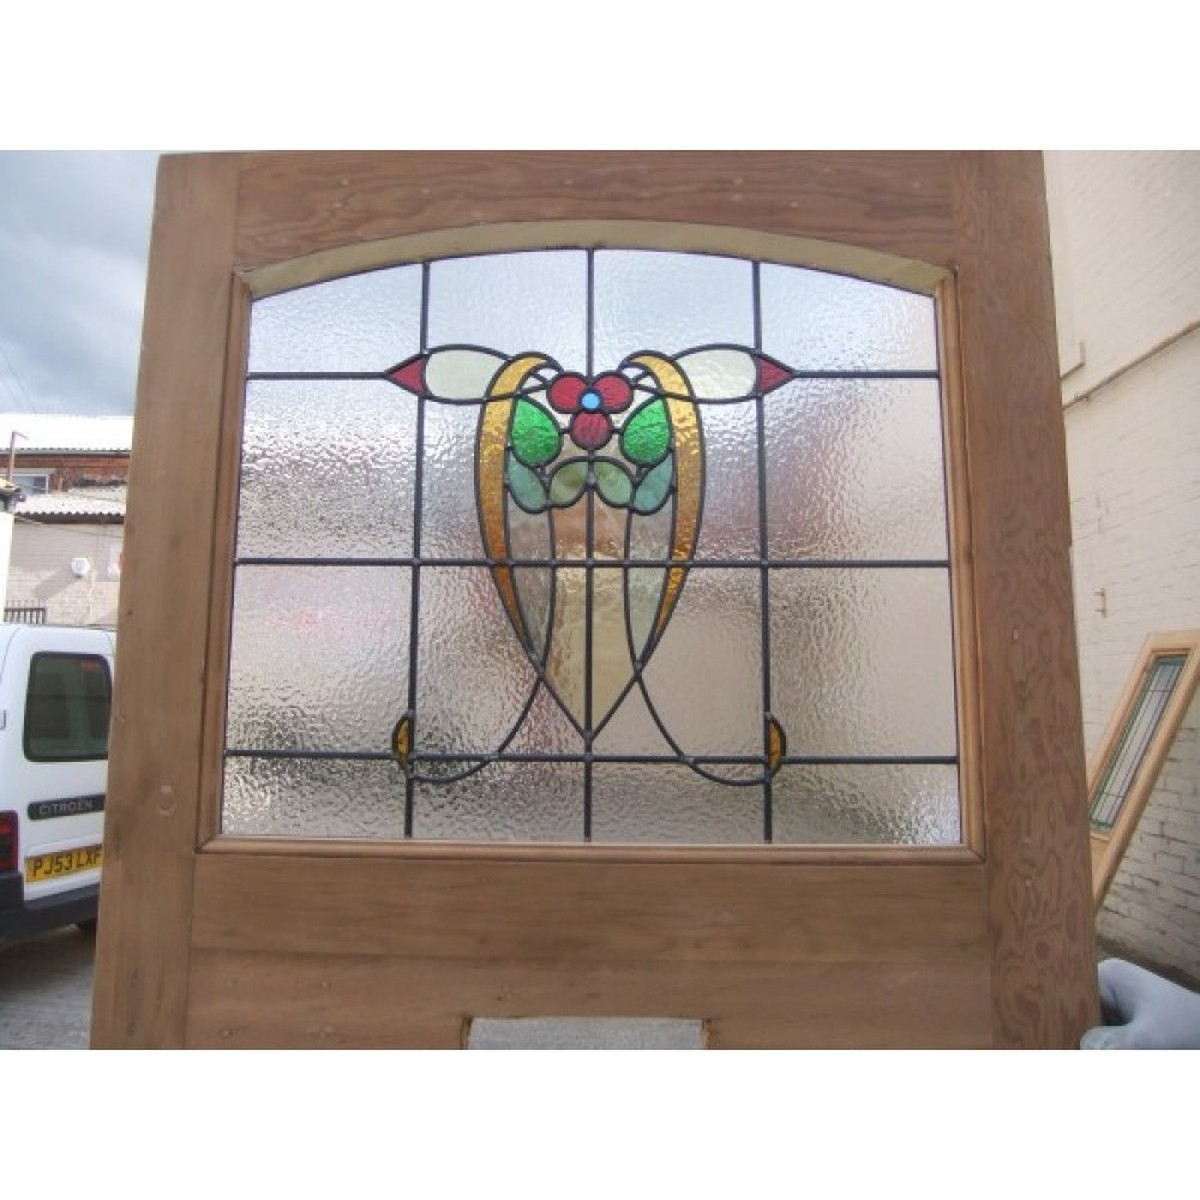 Secondhand Vintage And Reclaimed Doors And Windows 1930 Edwardian Stained Glass Exterior